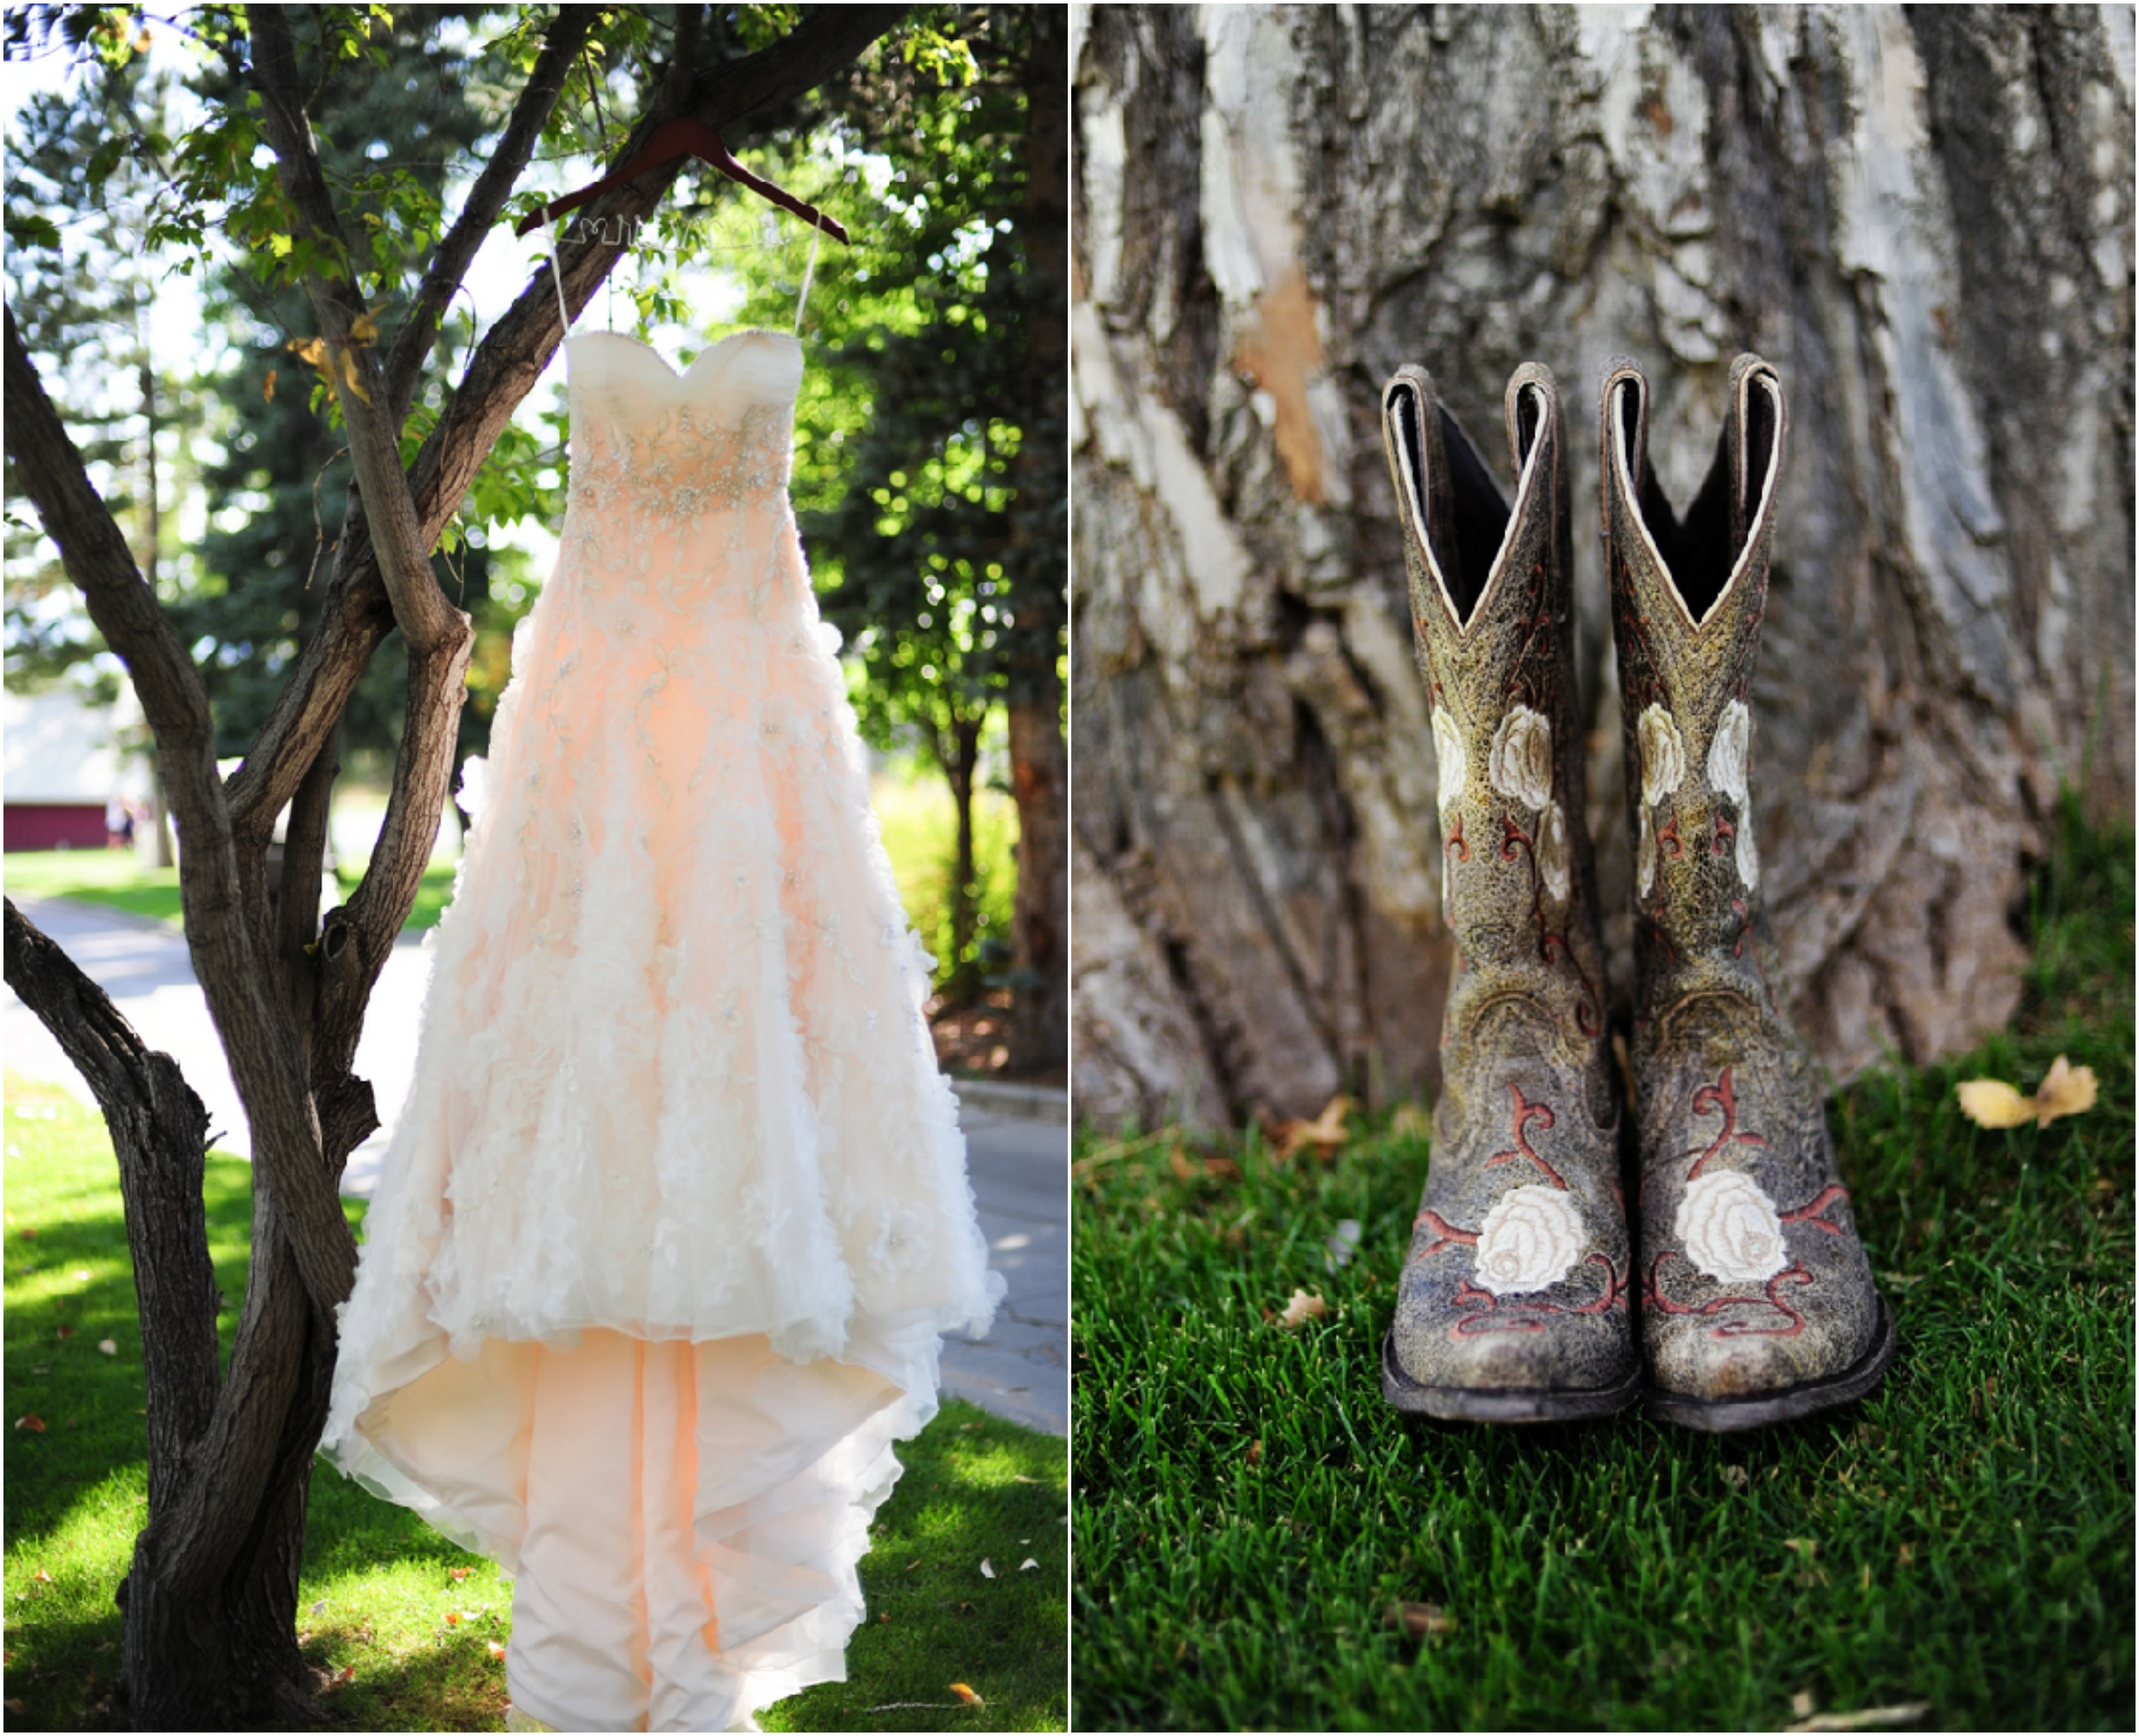 country wedding dress with cowgirl boots OsIMziKzCxlDbEt uwKmuaHo IQ country wedding dresses Country